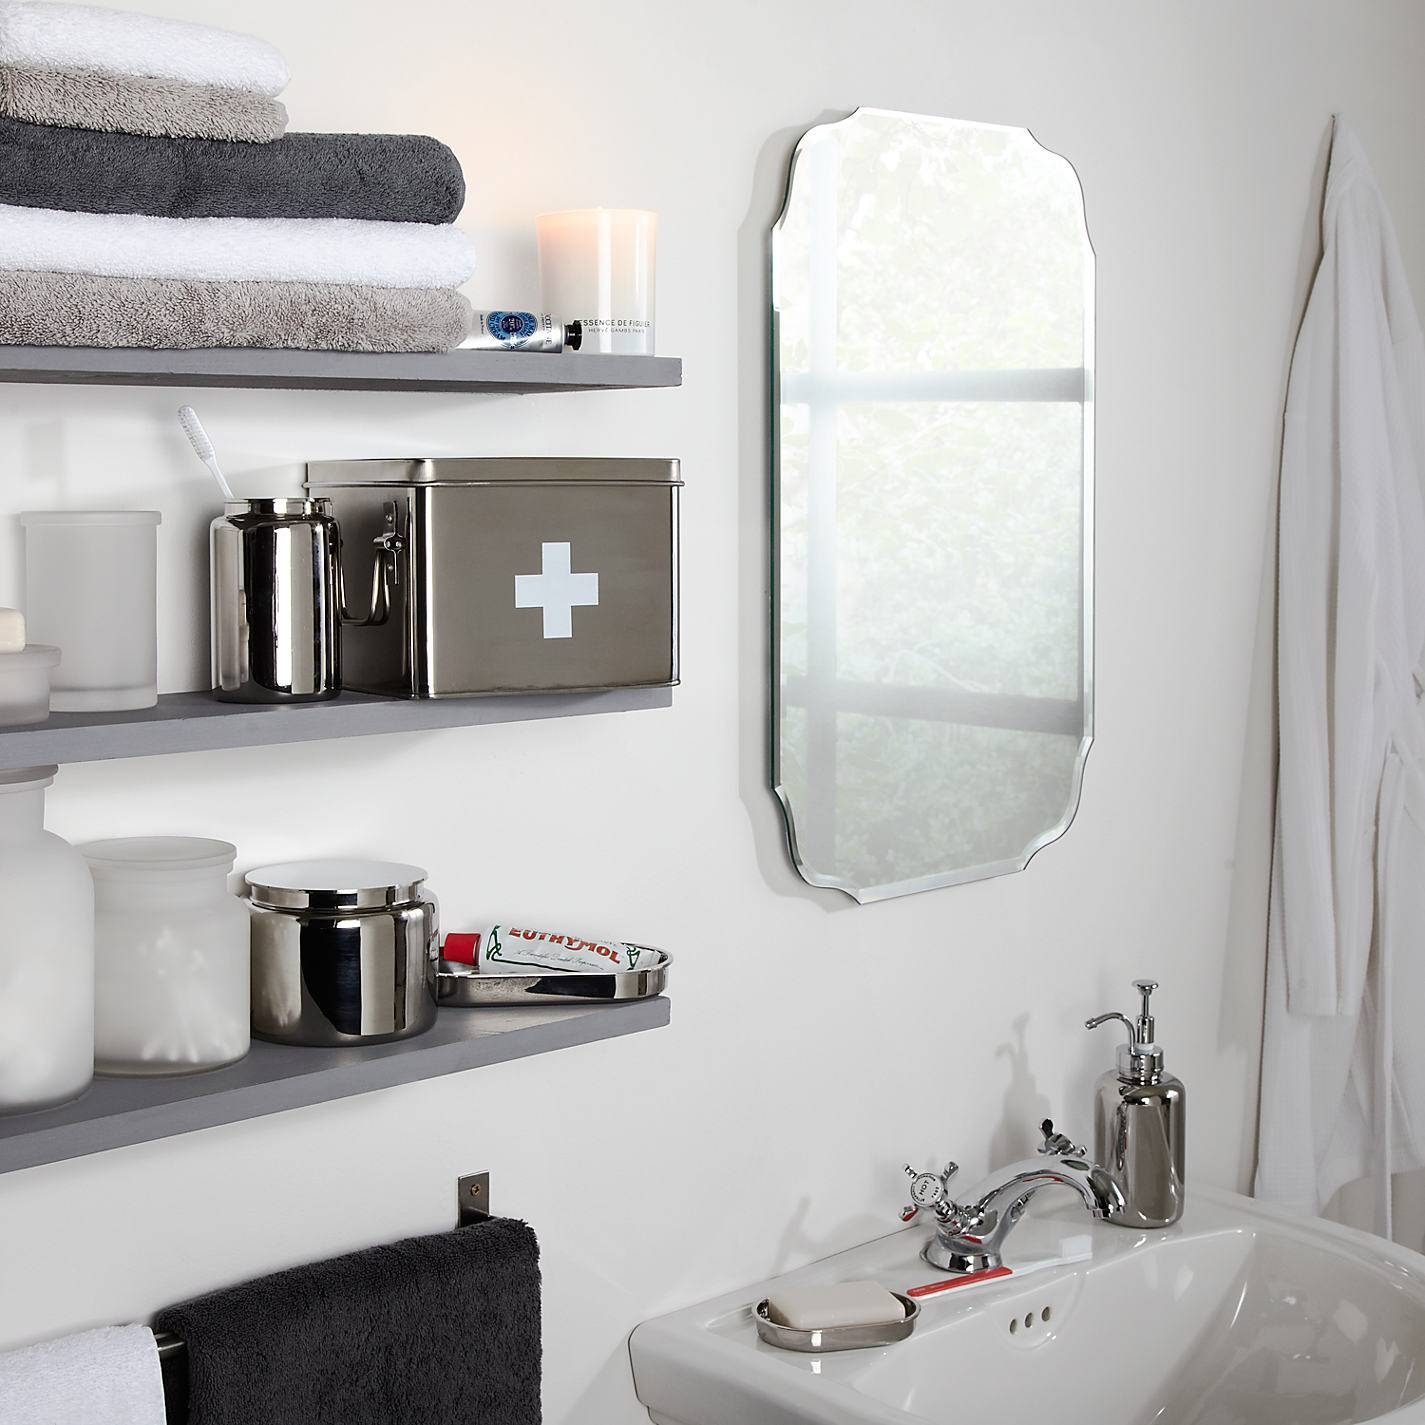 Tremendous Old Fashioned Bathroom Mirrors Buy John Lewis Vintage with regard to Retro Wall Mirrors (Image 22 of 25)